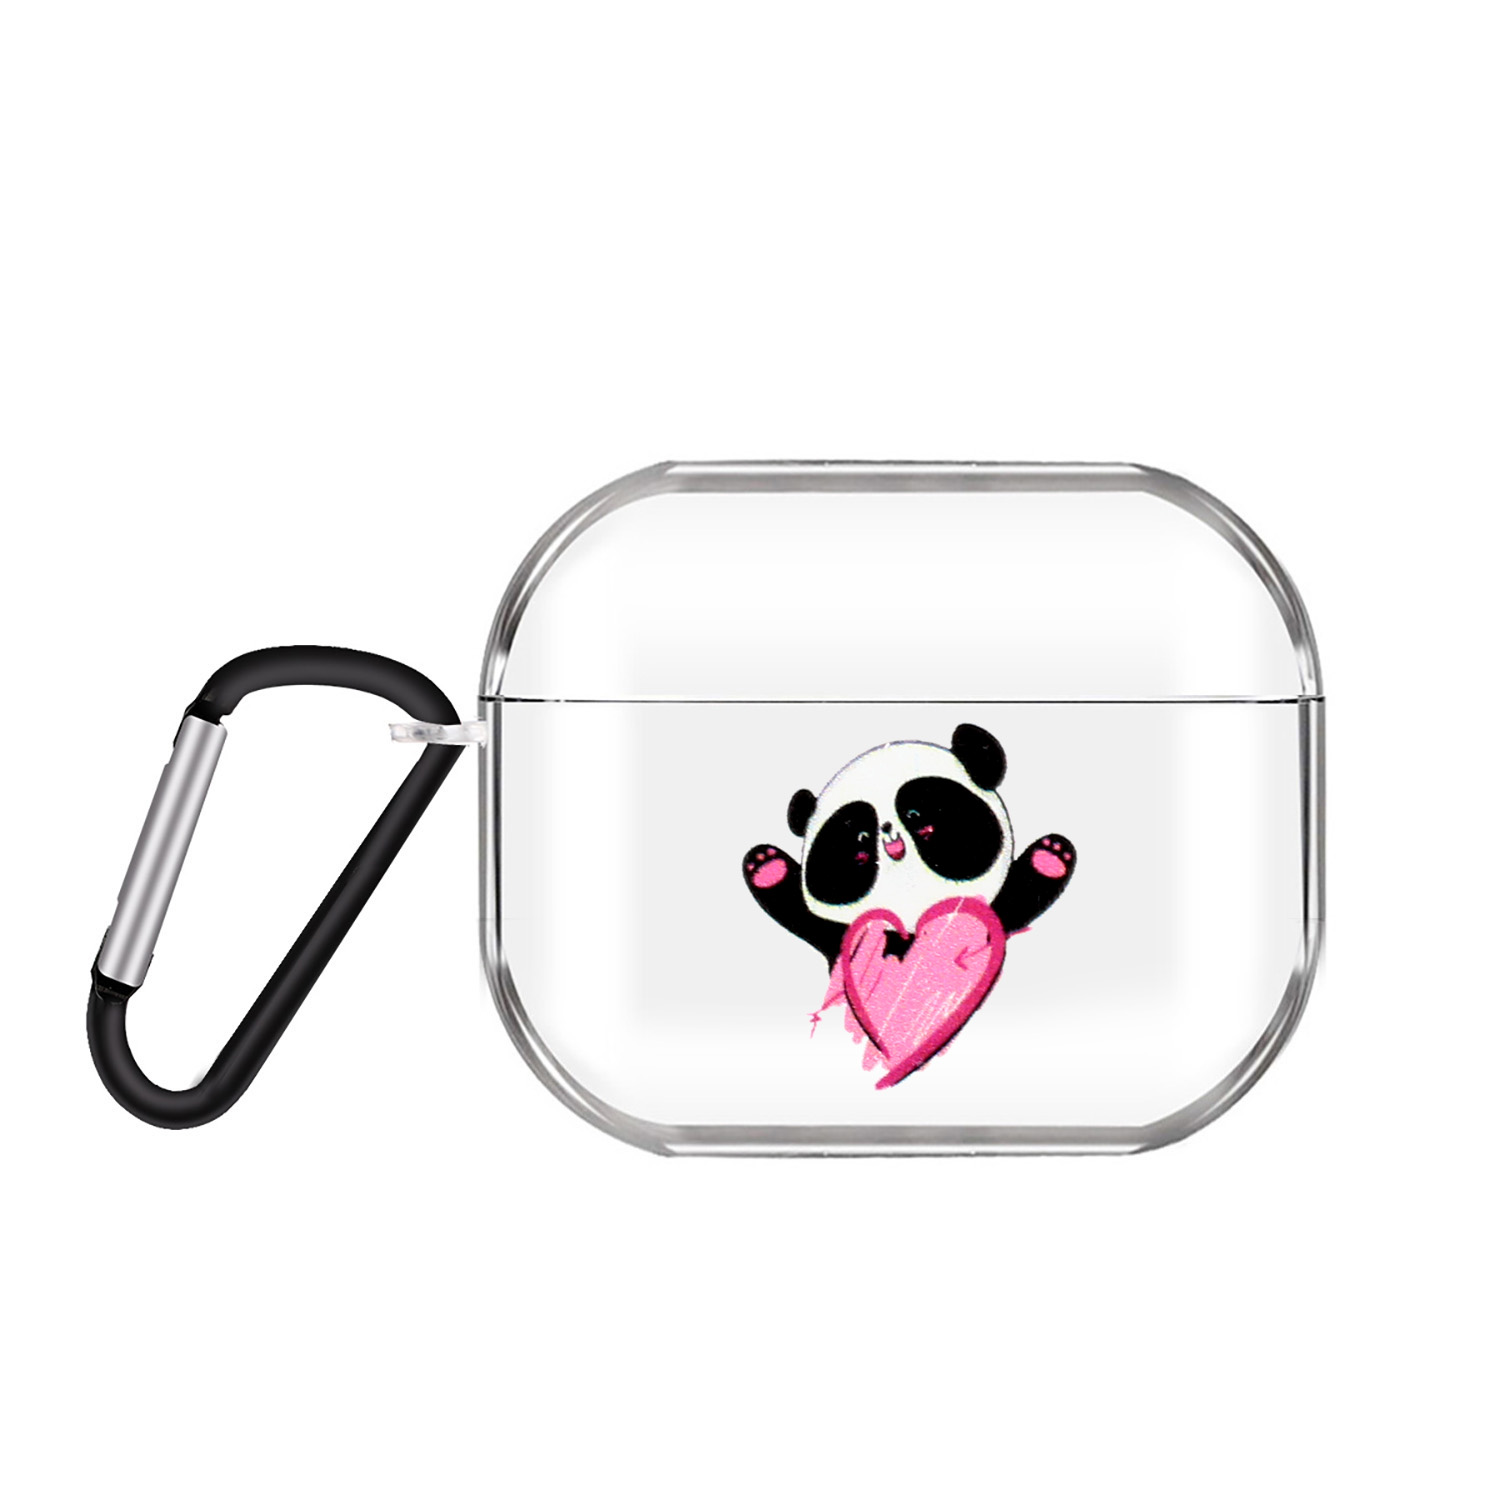 For AirPods Pro Headphones Case Transparent Earphone Shell with Metal Hook Overall Protection Cover 7 Love Pandas